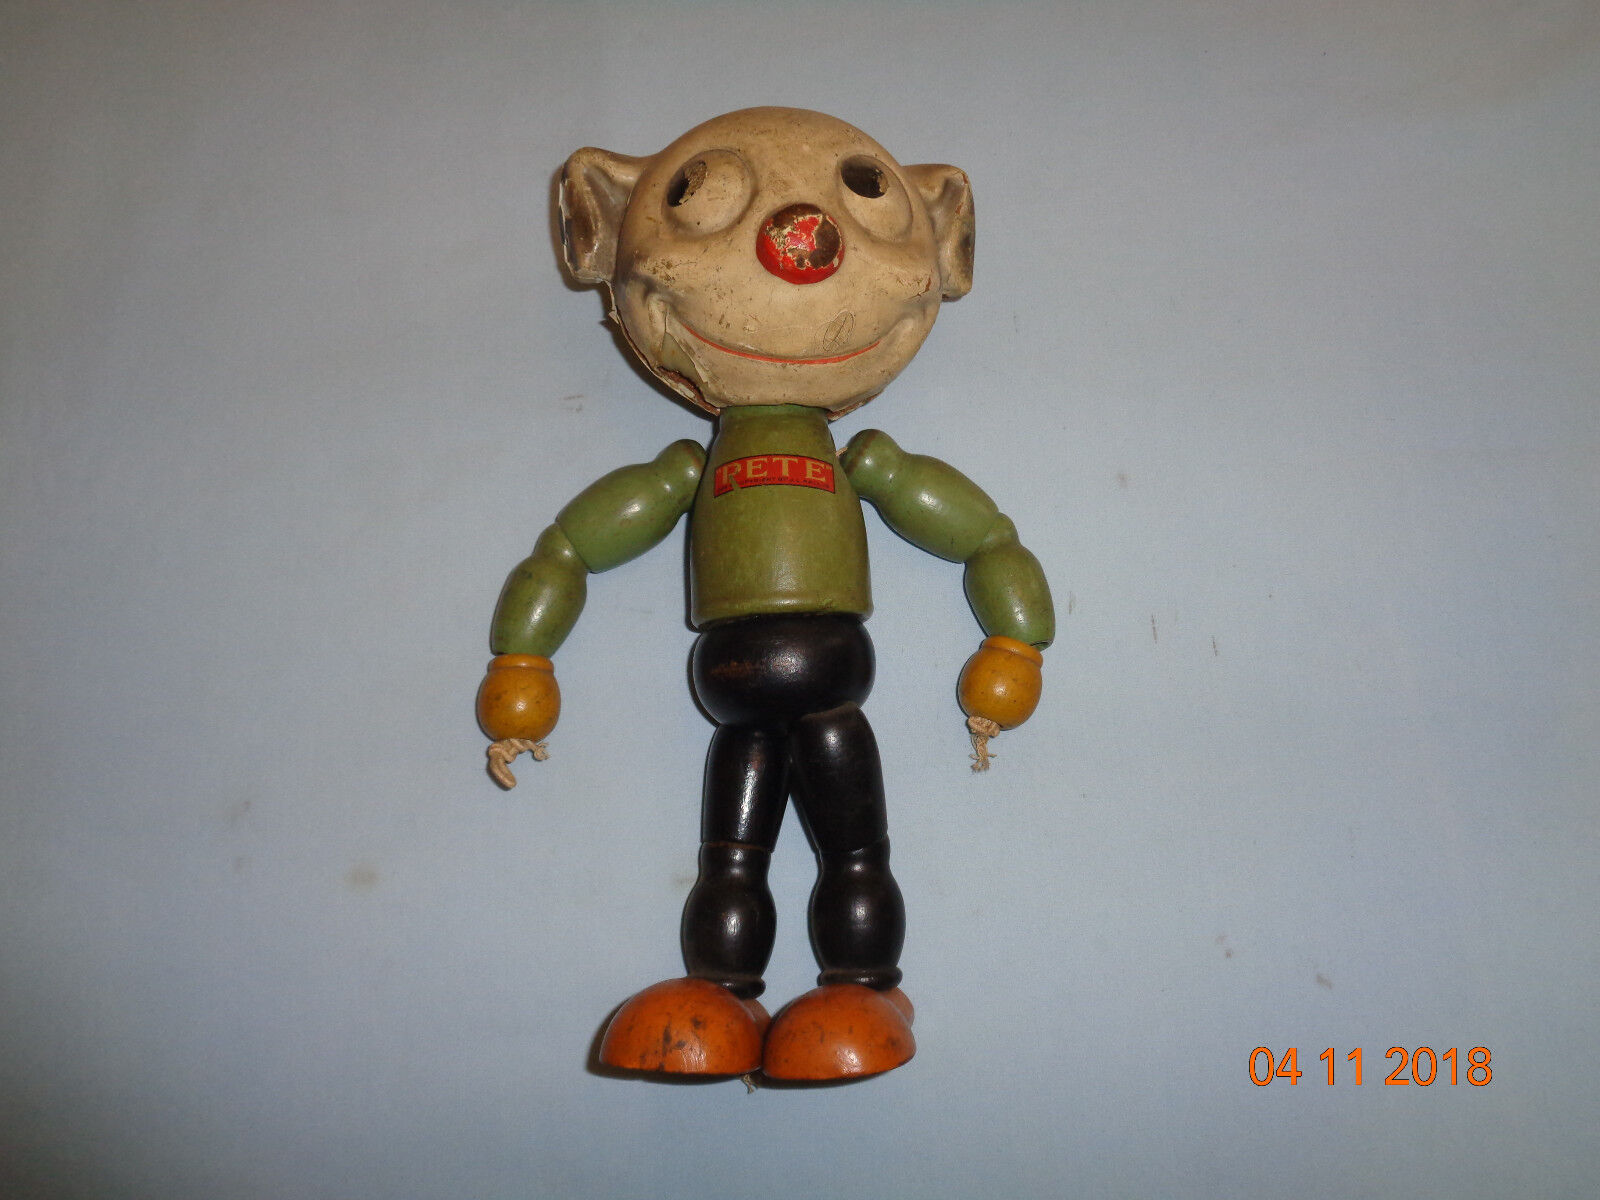 Vintage PETE the Pup Wood, Segmented, Jointed Cartoon Character by J.L Kallus